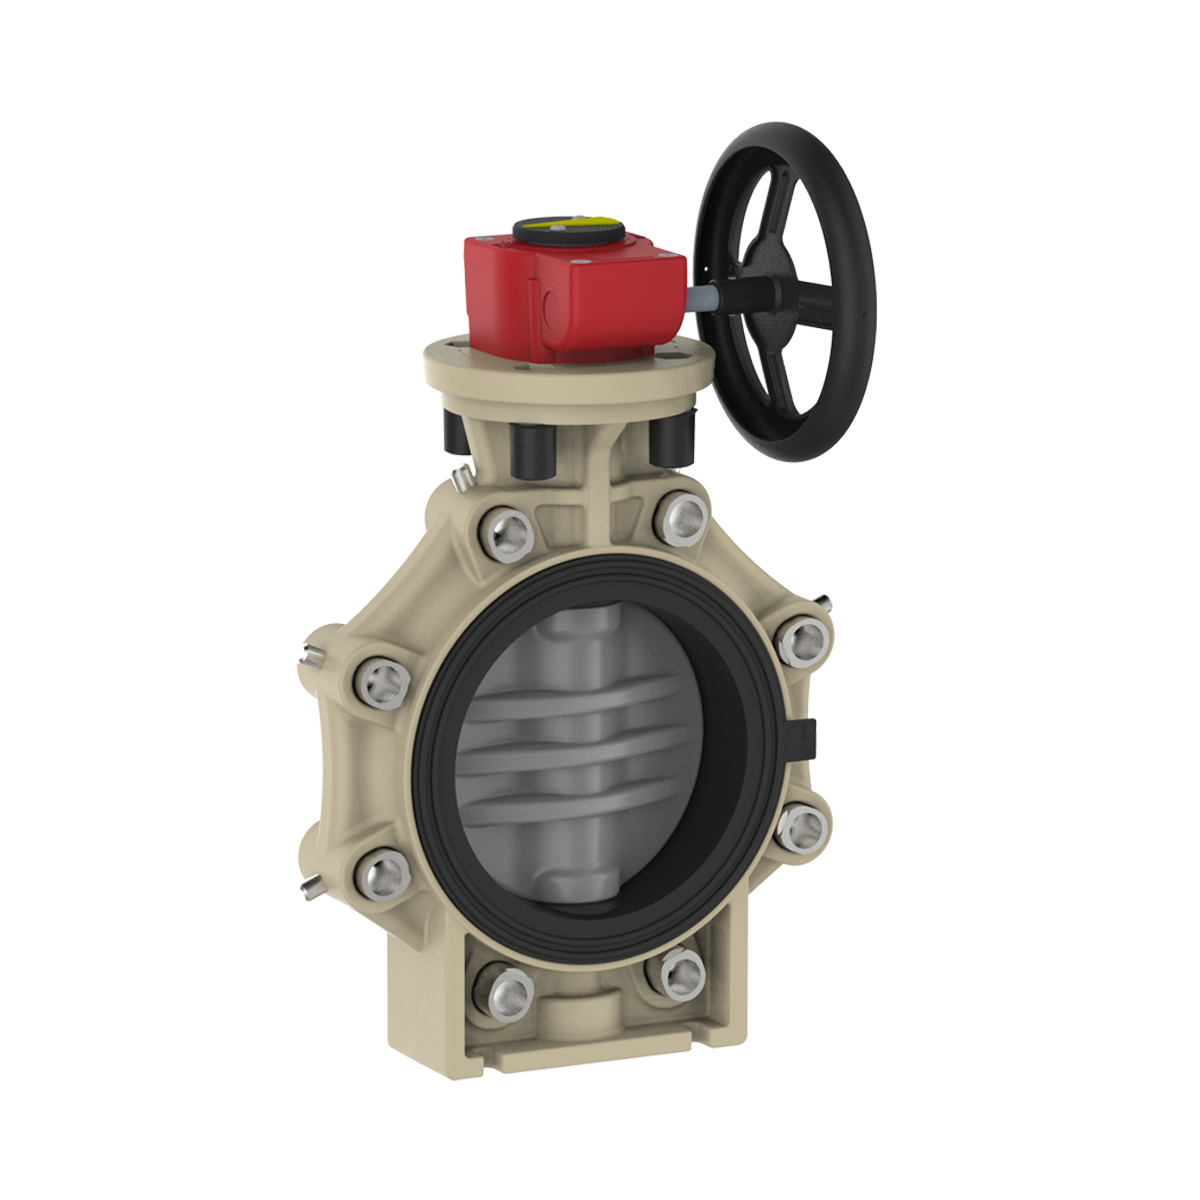 Praher_K4_butterfly_valve_LugType_PVC-C_wheel, grey, black, beige, red